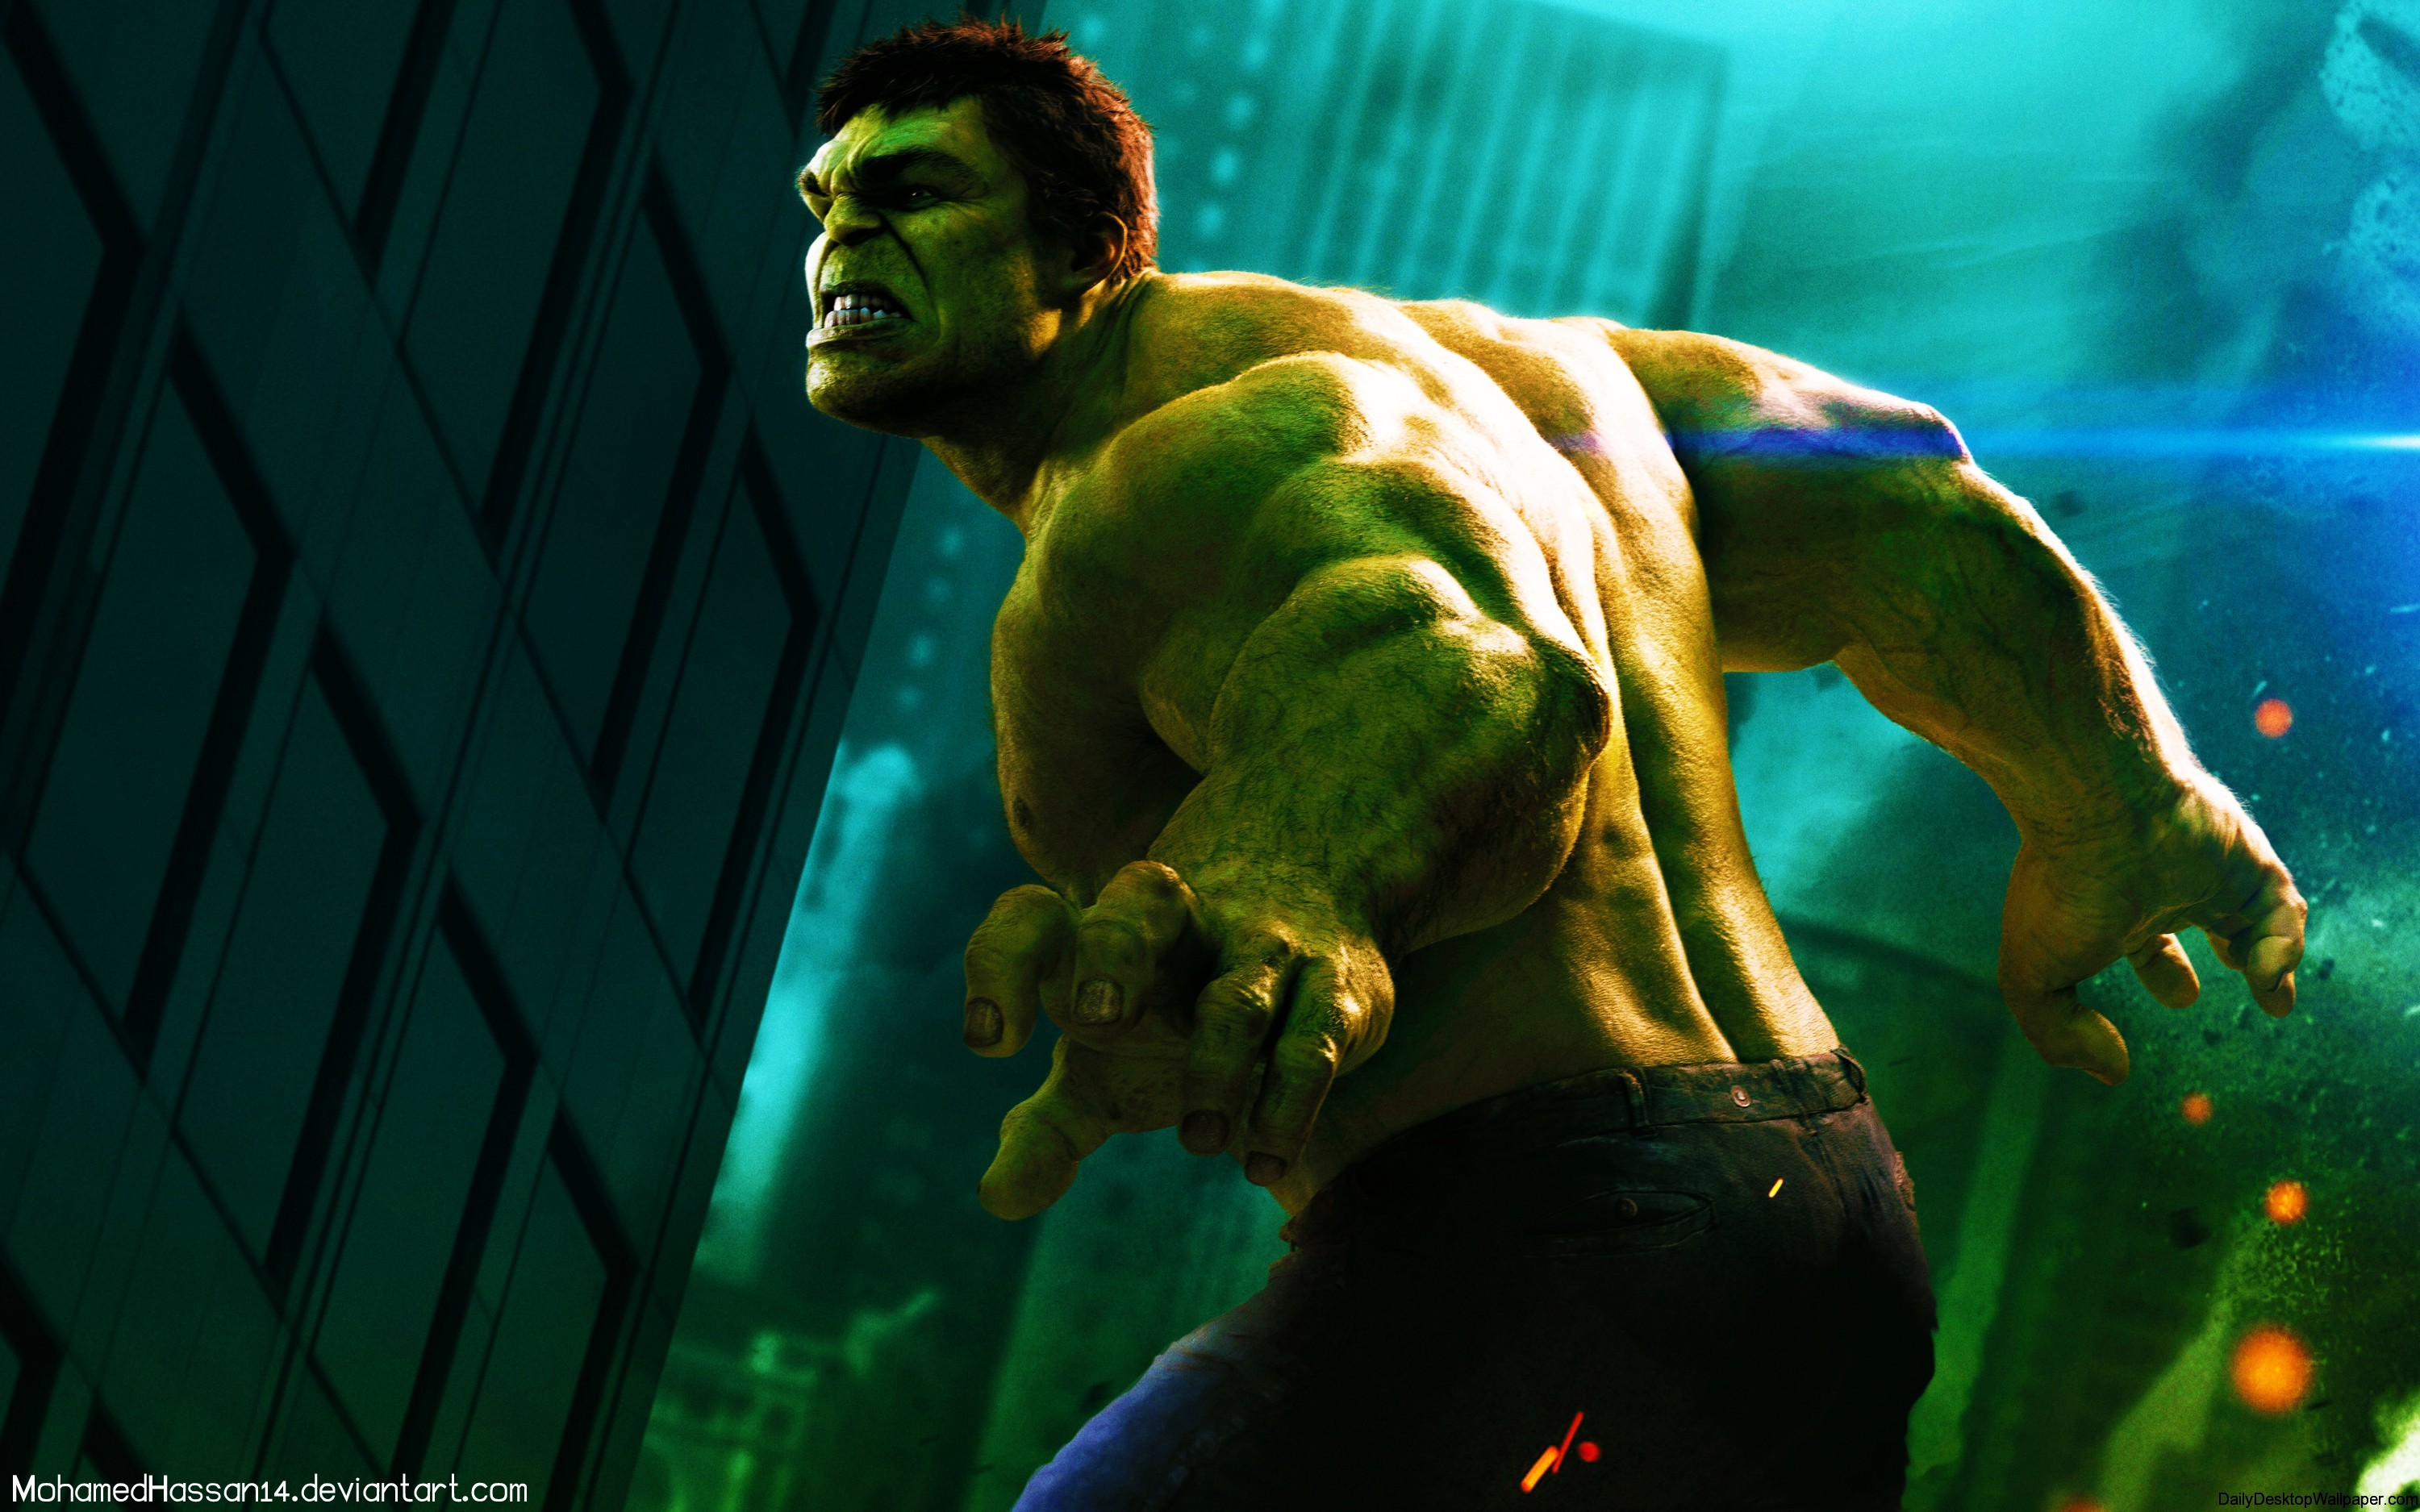 The hulk hd wallpapers - Hulk hd images free download ...